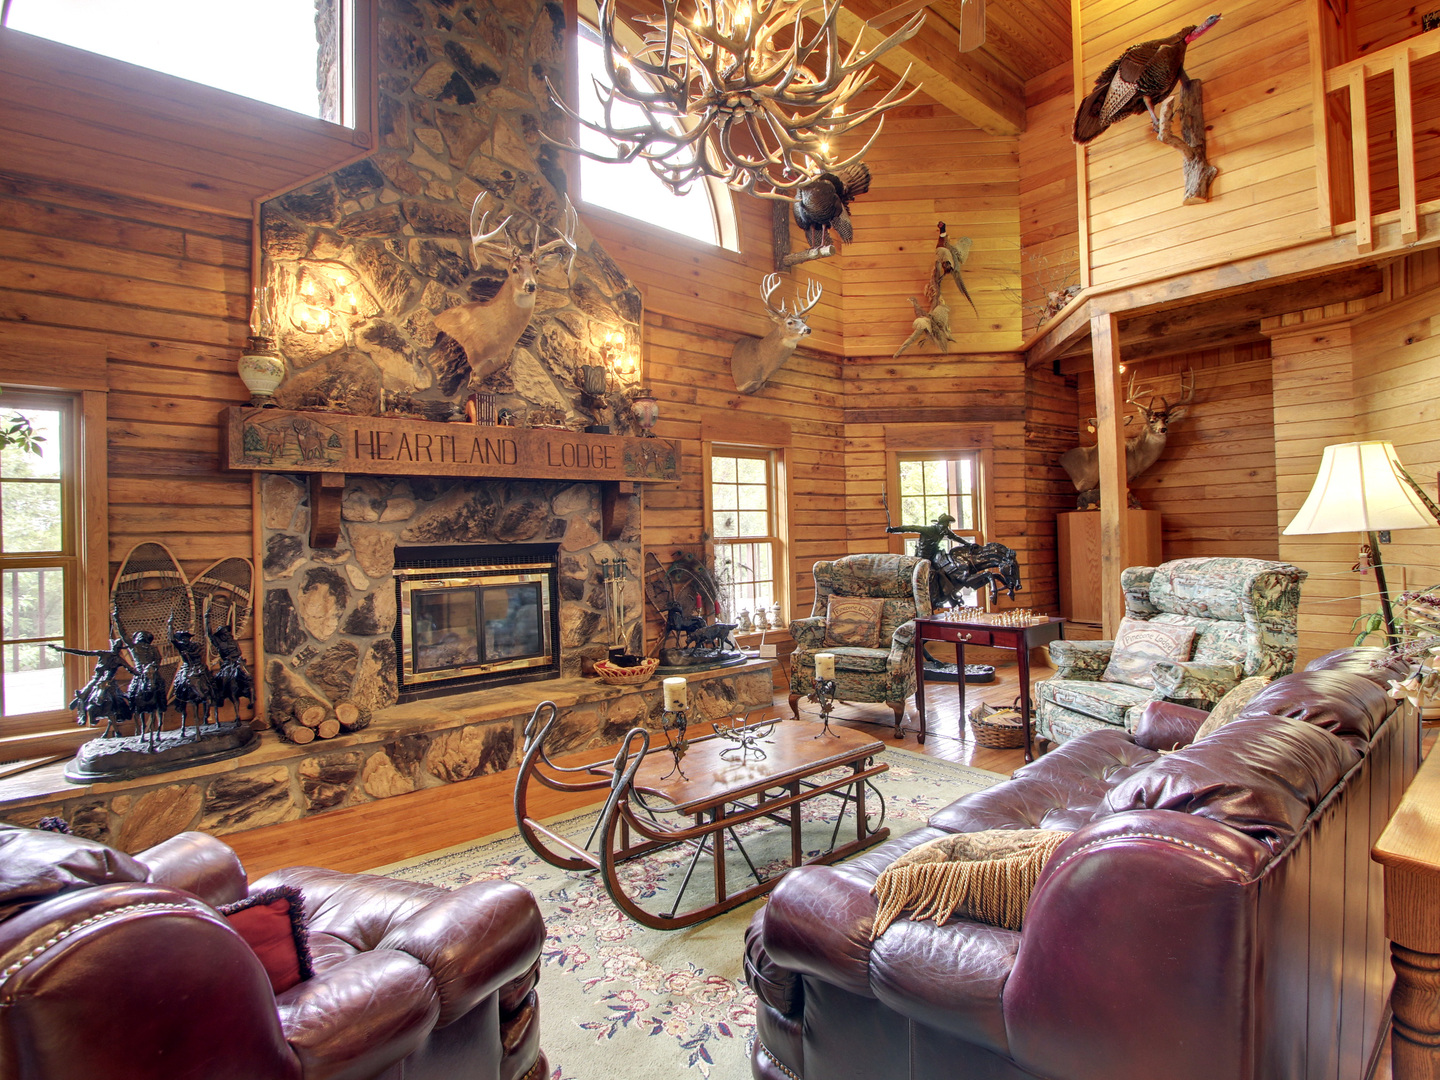 A living room filled with furniture and a fireplace at Harpole's Heartland Lodge.